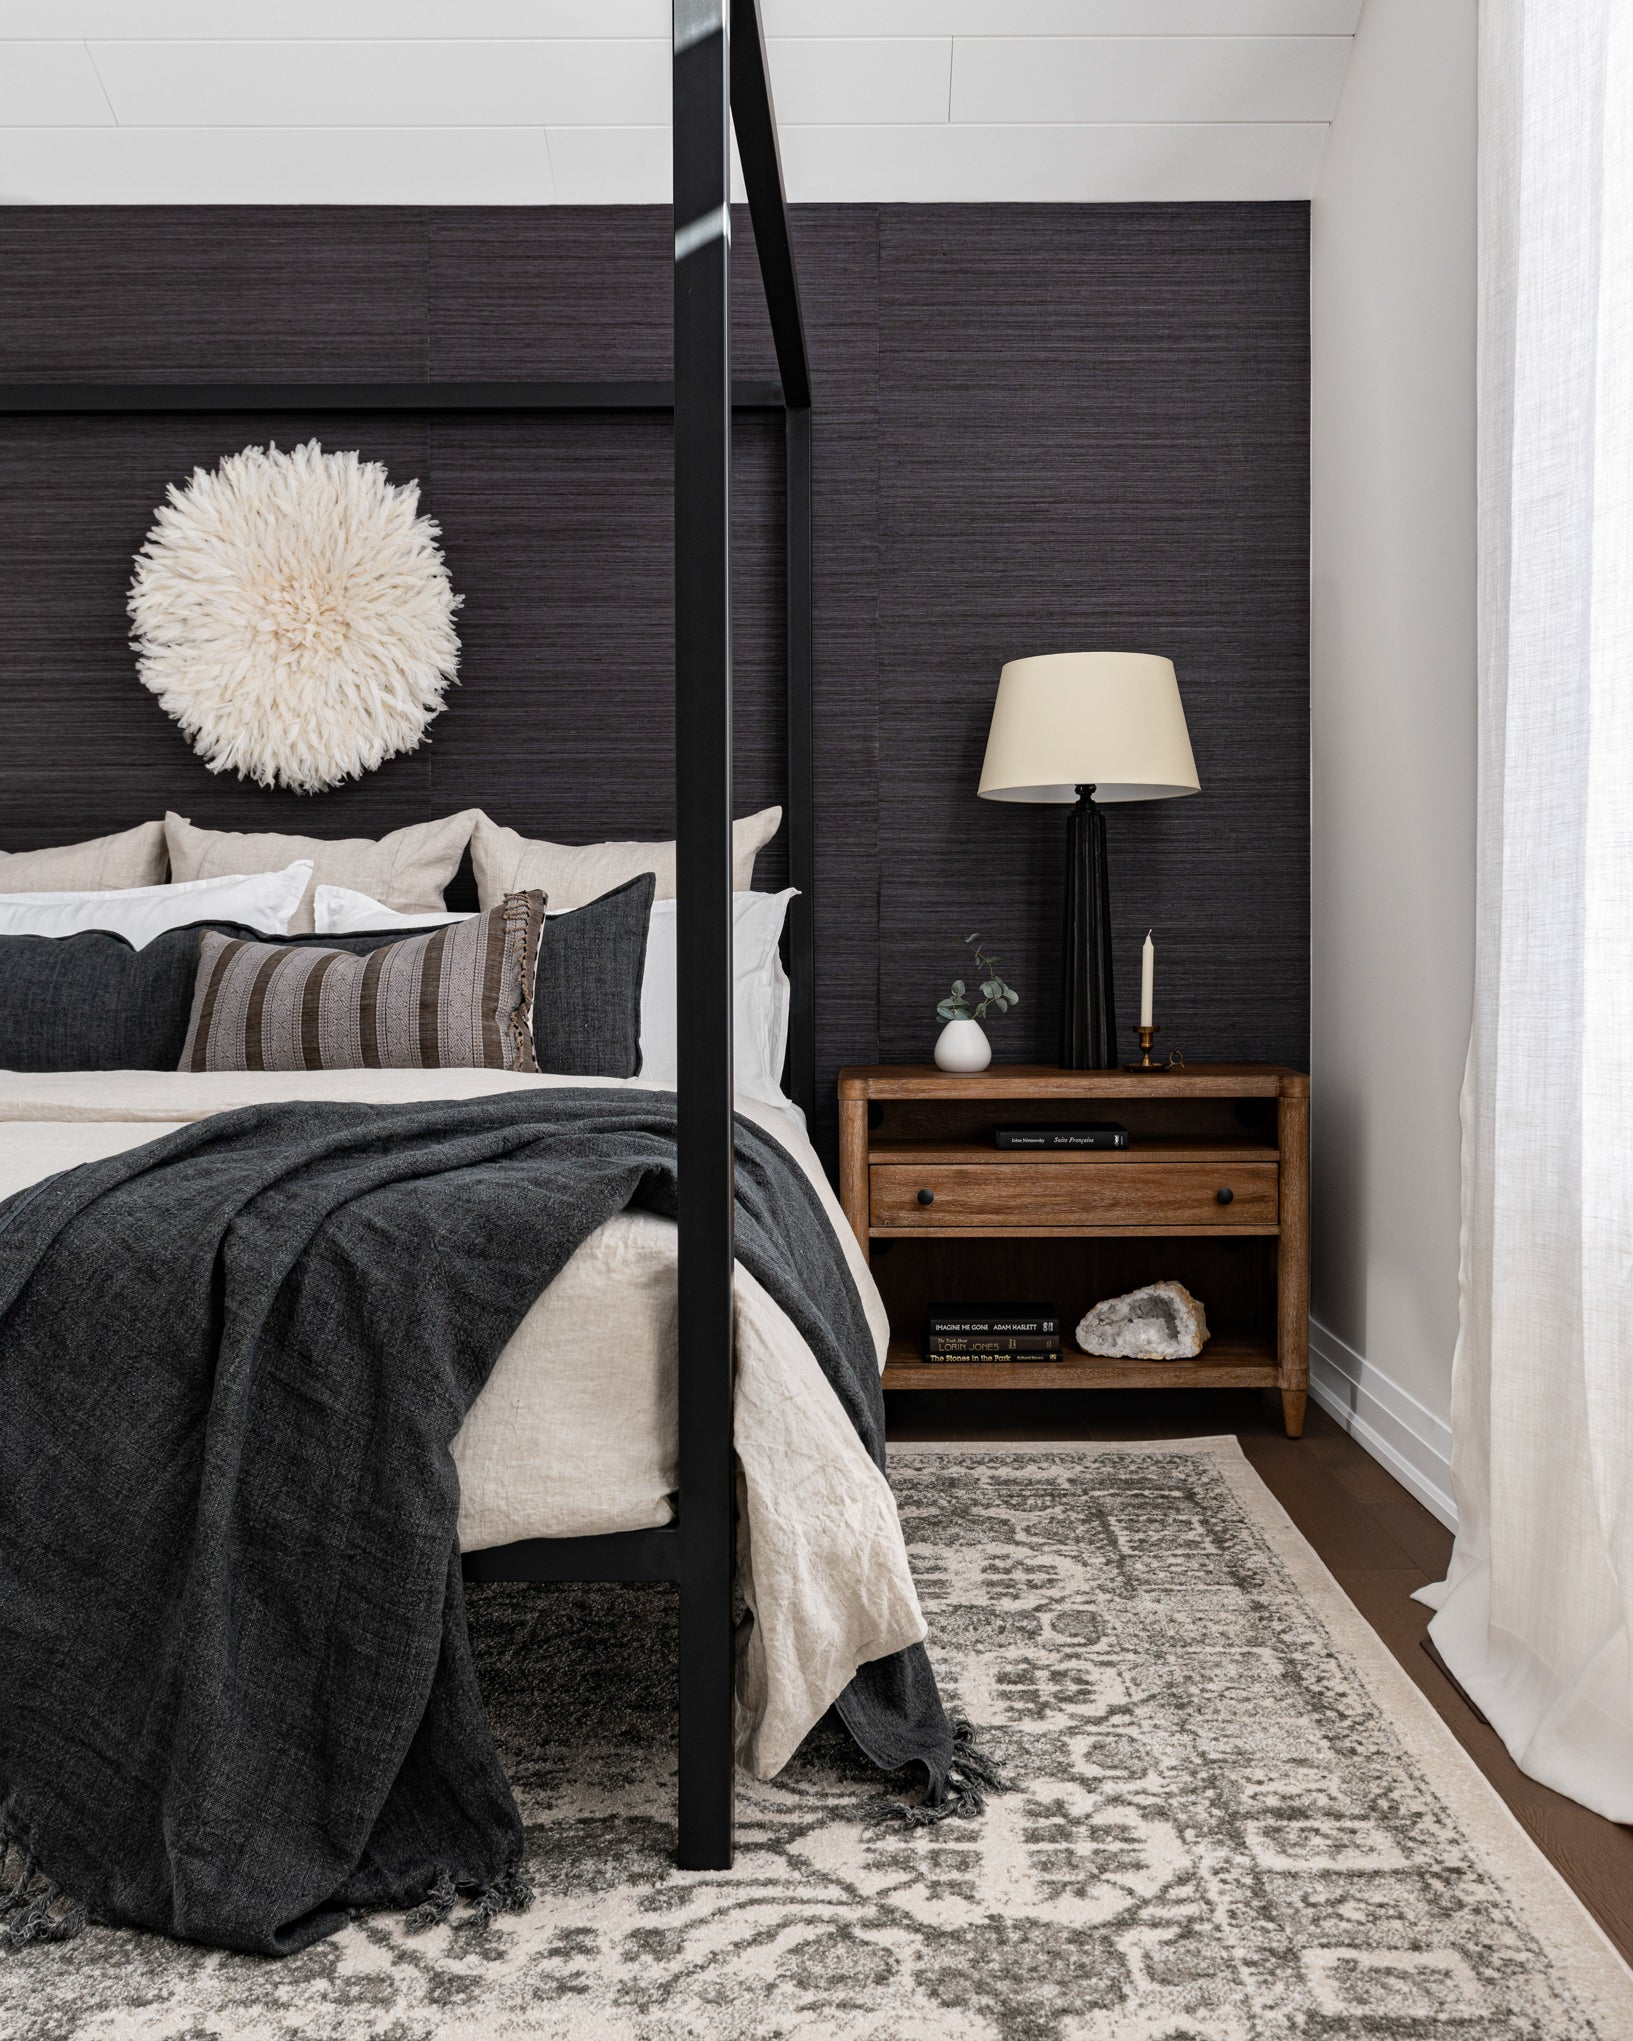 Canopy bed and wood accent in moody master bedroom.